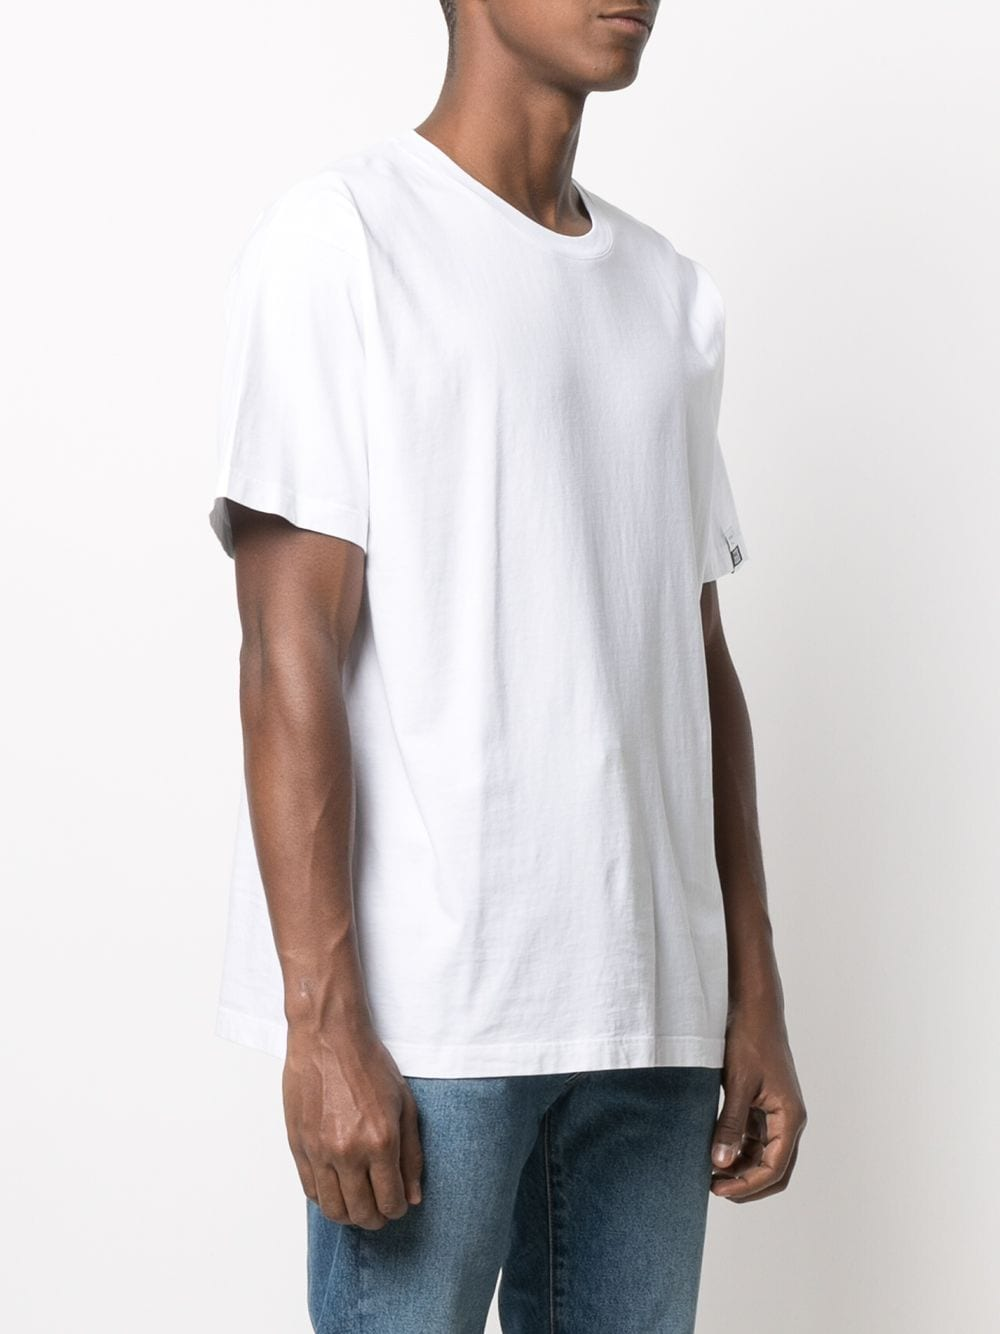 Picture of Golden Goose Deluxe Brand | Re/Make Print T-Shirt